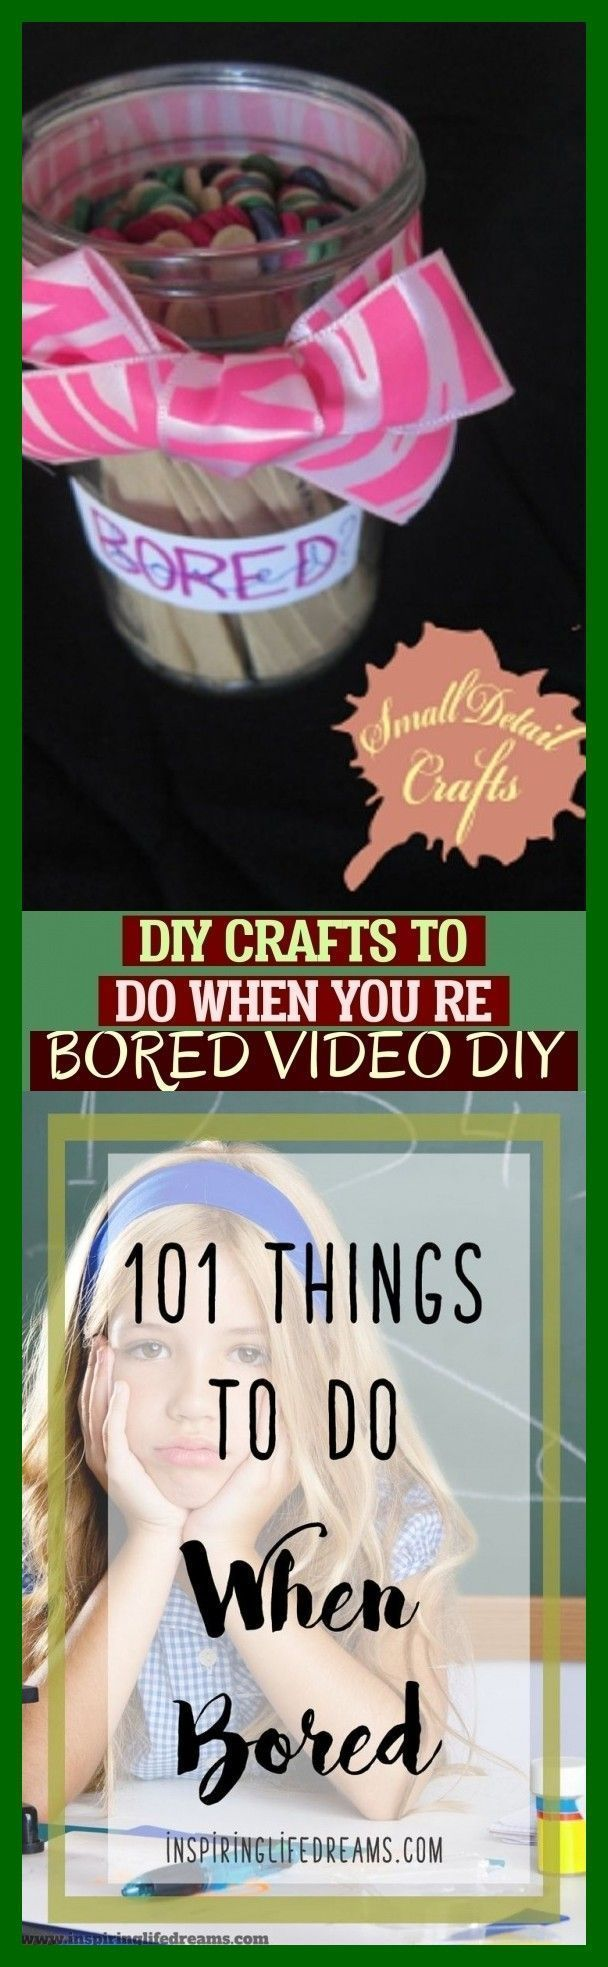 More Than 5 Diy Crafts To Do When You Re Bored Video Diy - #diy - diy handwerk z... #bored #crafts #DIY #Handwerk #Video More Than 5 Diy Crafts To Do When You Re Bored Video Diy – #diy – diy handwerk z… MORALES BLOG moralesblog morales More Than 5 Diy Crafts To Do When You Re Bored Video Diy – #diy – diy handwerk z… –  More Than 5 Diy Crafts To Do When You Re Bored Video Diy – #diy – diy handwerk zu tun, wenn sie – #bored #crafts  MORALES BLOG  More Than 5 Diy Crafts To Do When You Re Bored Vid